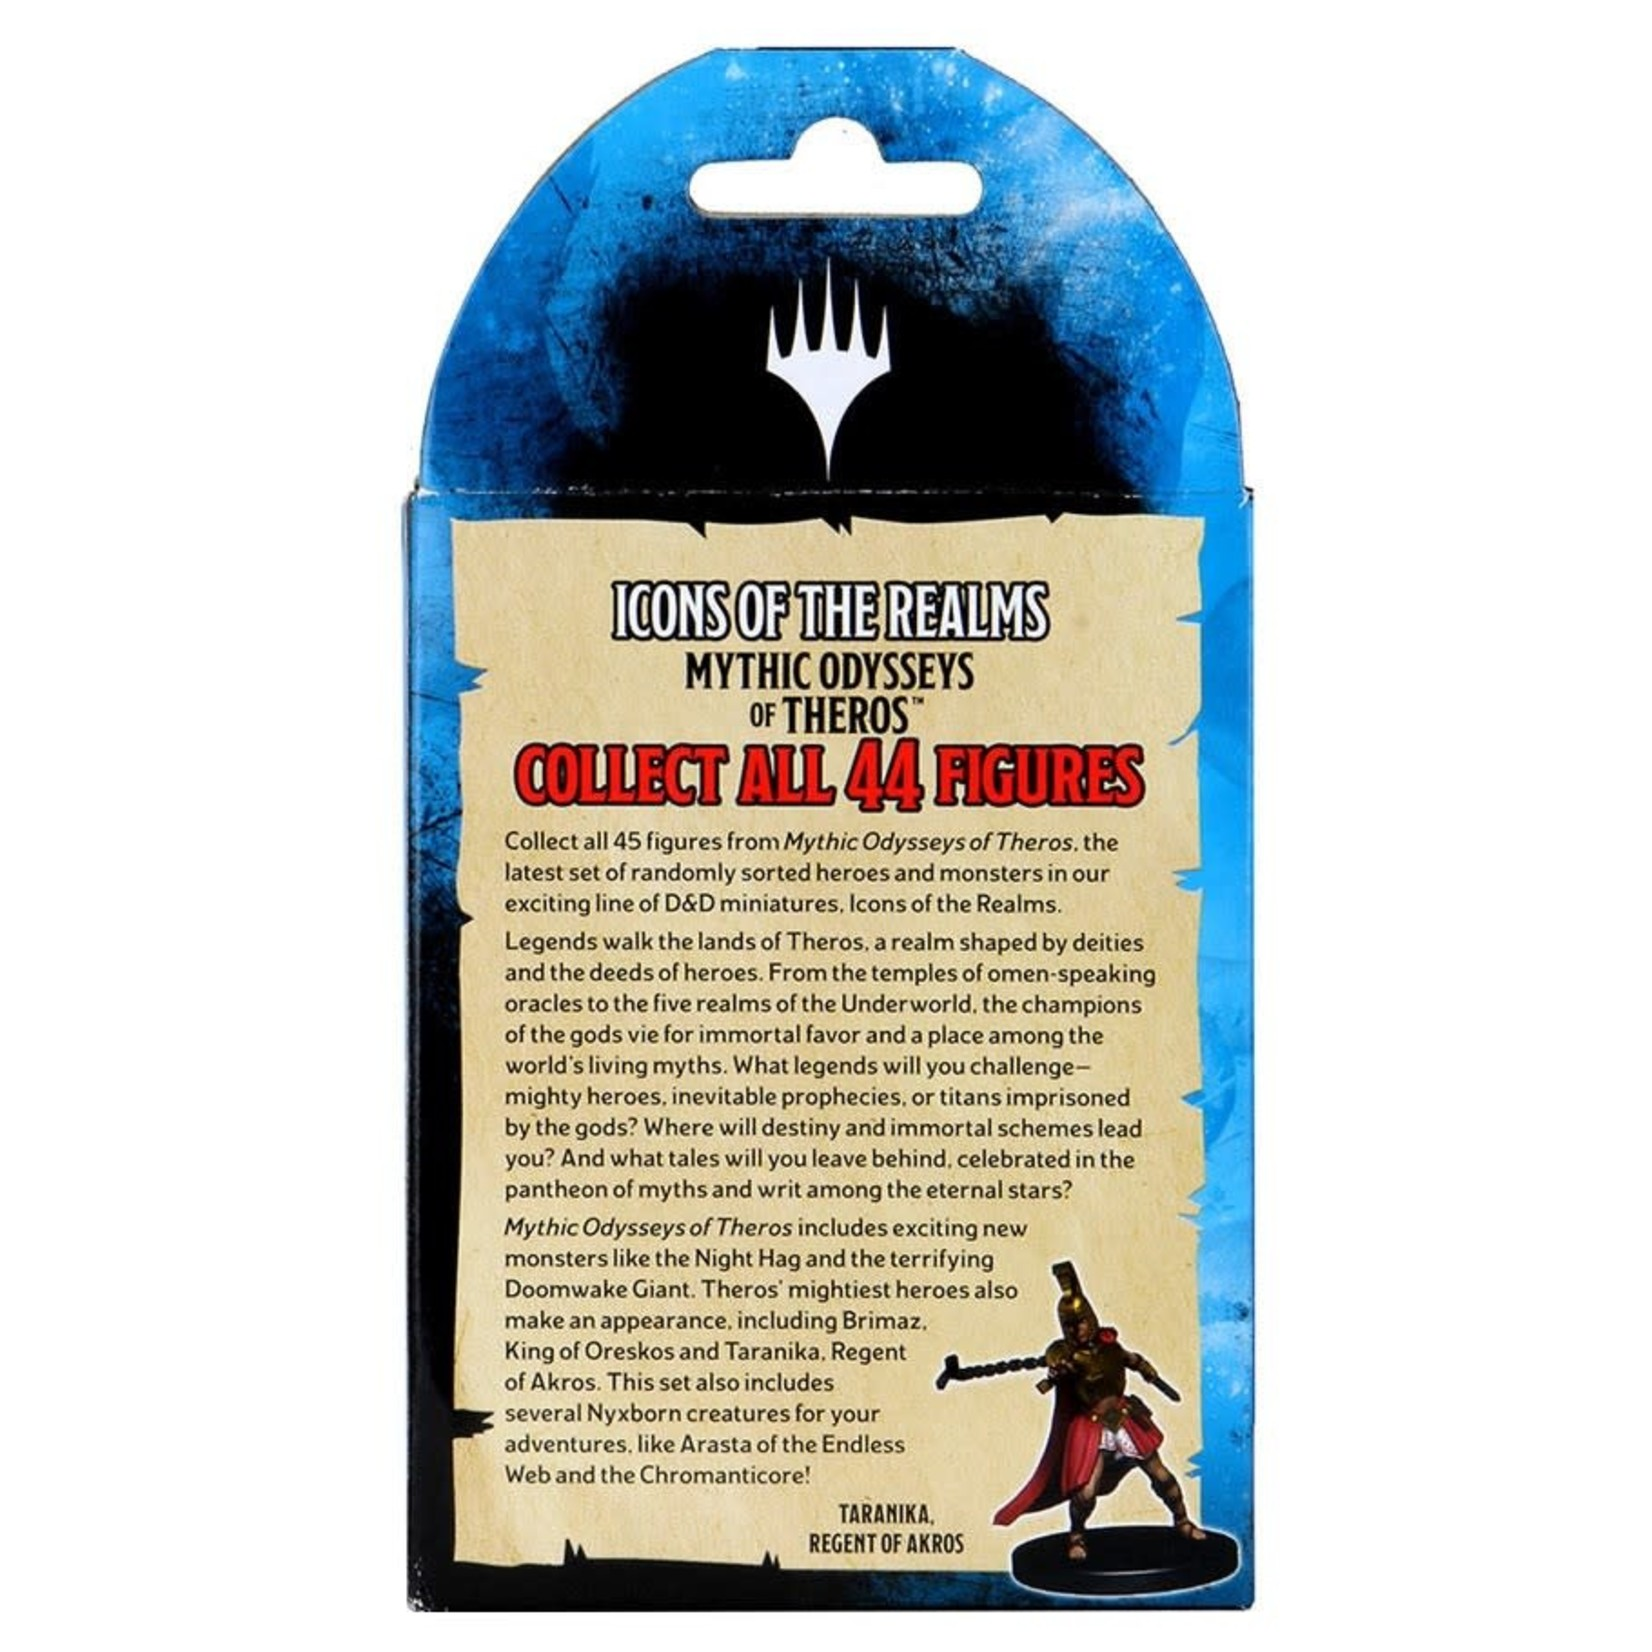 WizKids Dungeons & Dragons: Icons of the Realms:Mythic Odysseys of Theros Booster Brick (8)